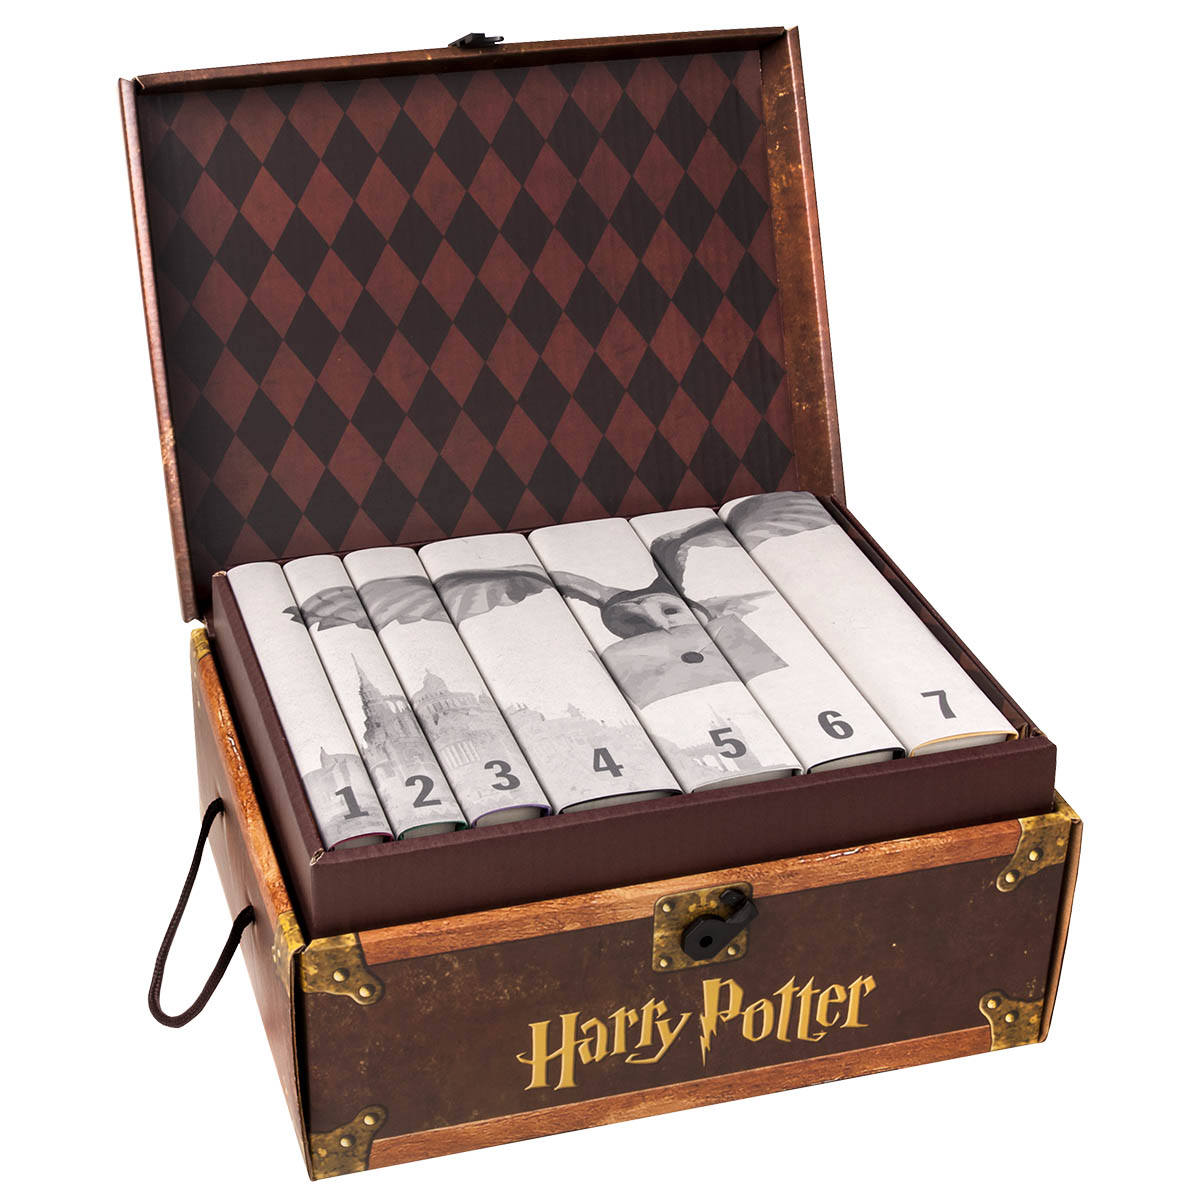 Harry Potter Hogwarts Set